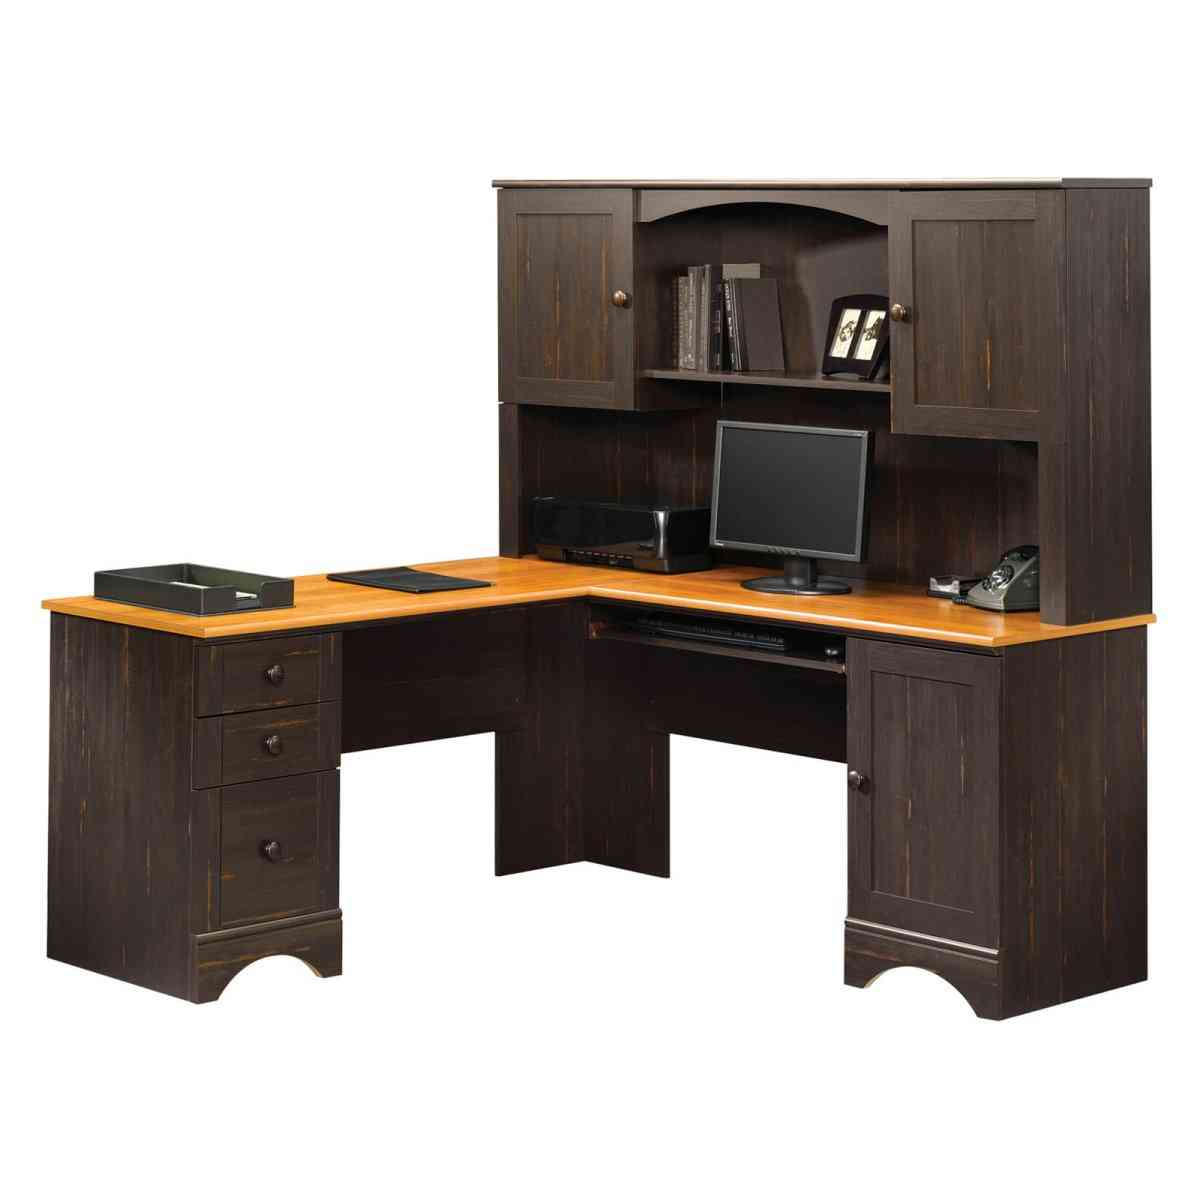 Sauder Corner Desk With Hutch Decor Ideasdecor Ideas